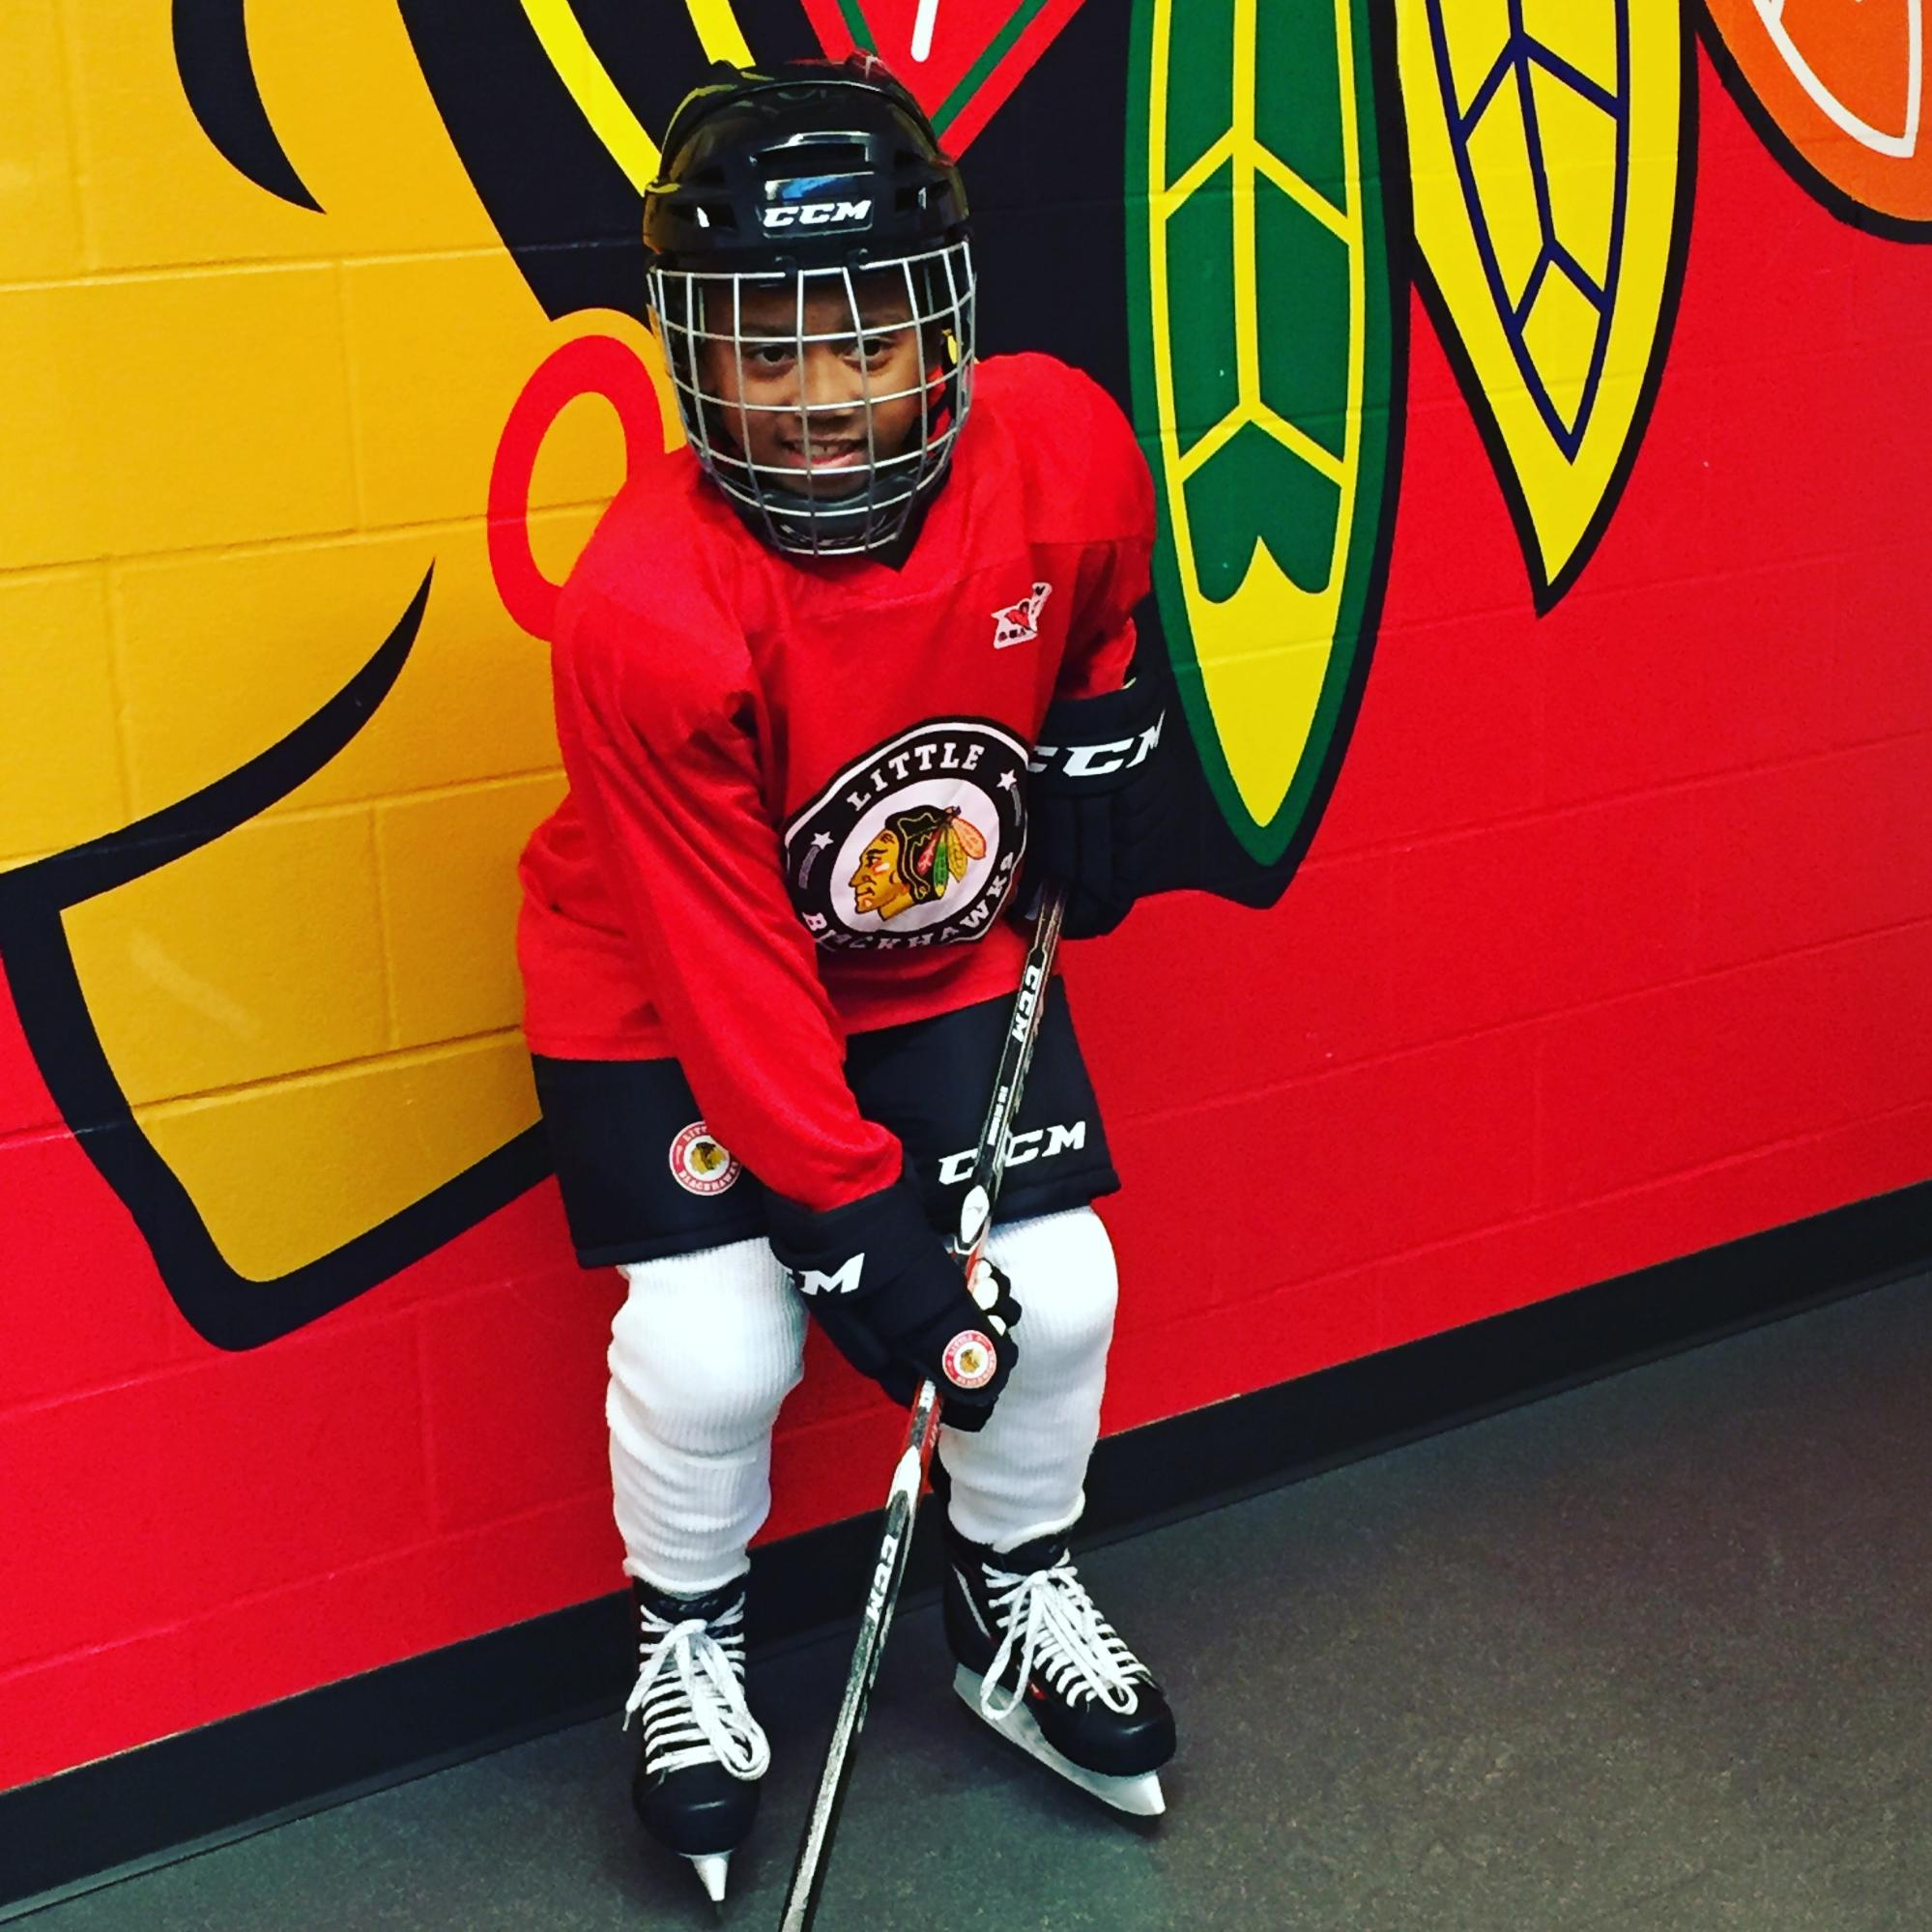 f99b0771676e3 The Chicago Hockey Initiative is thrilled to introduce our 51st Microgrant  recipient – Timmy! Timmy is an elementary school student from Chicago s  Near ...